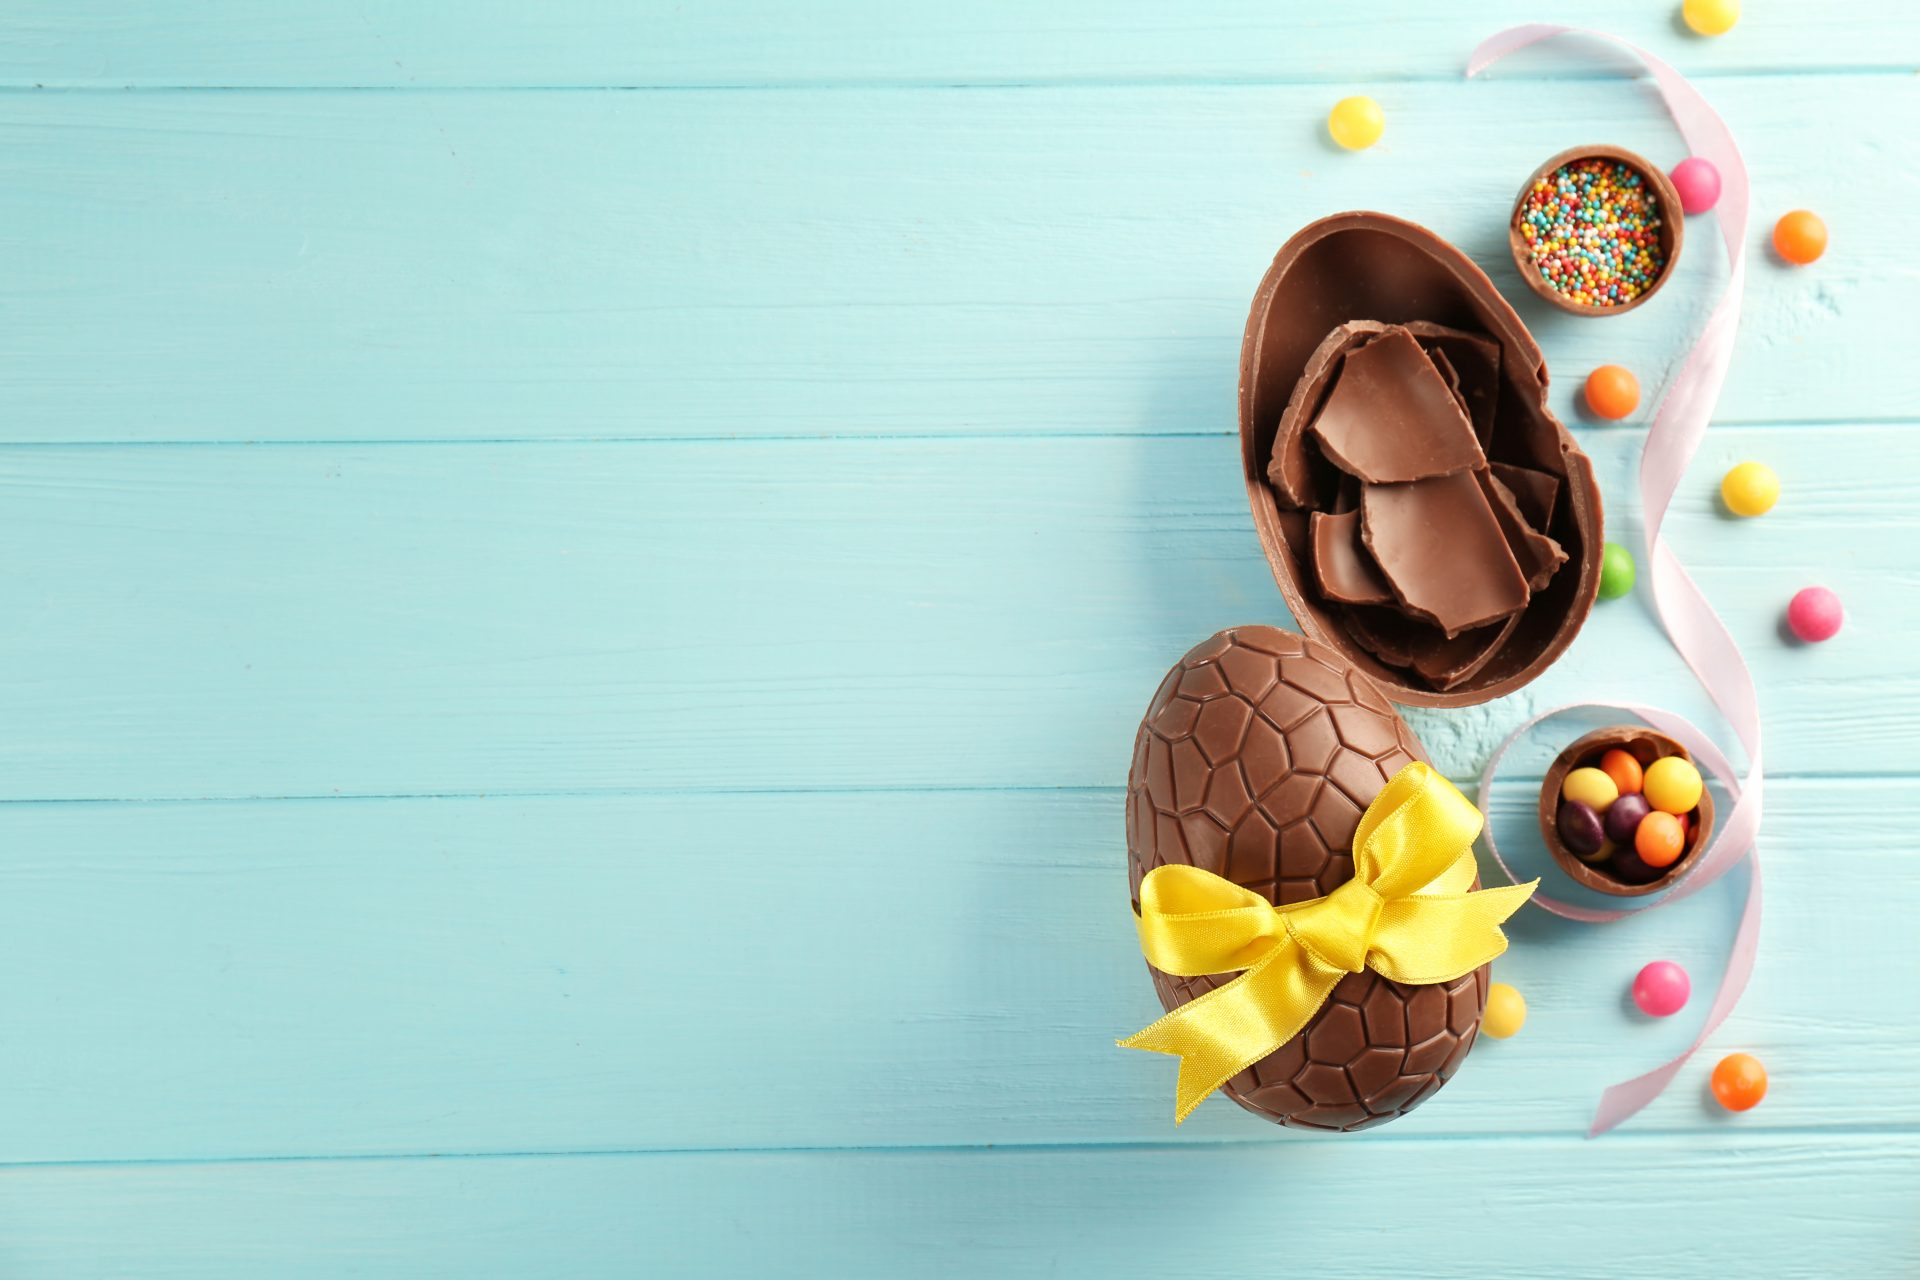 Photo of Chocolate Easter Eggs on turquoise blue background